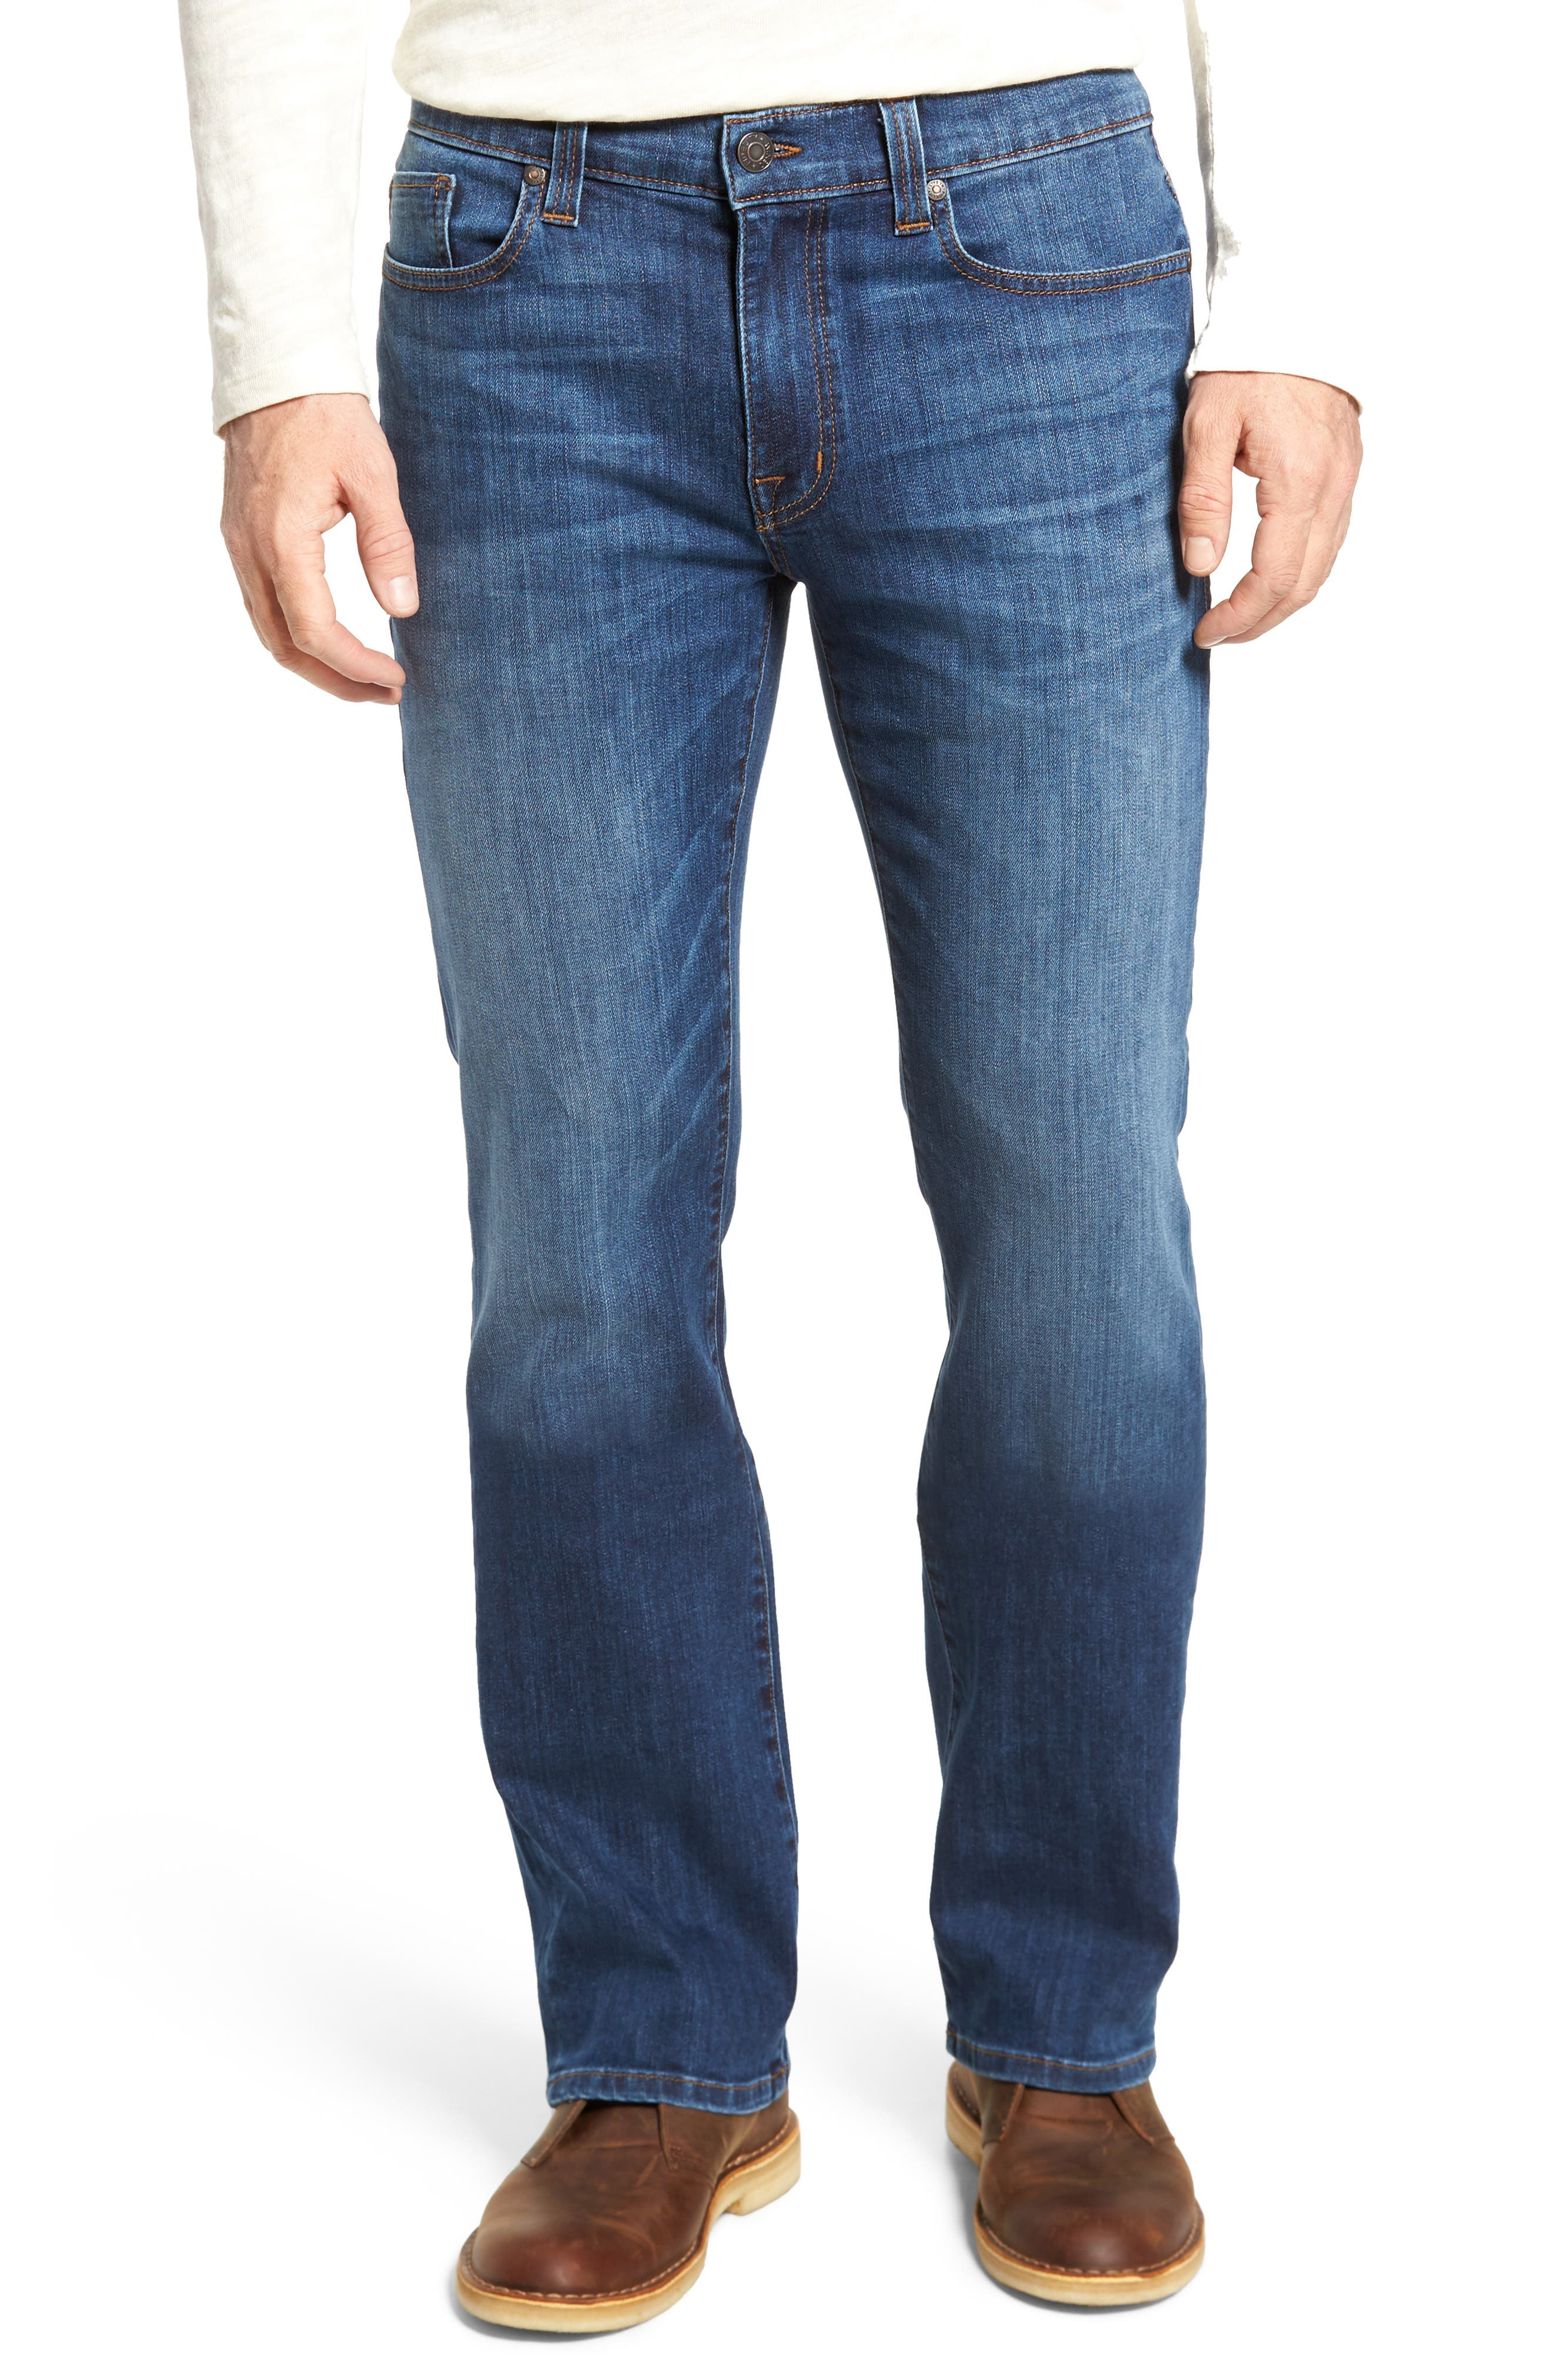 Fidelity Denim 5011 Relaxed Fit Jeans (Liverpool)